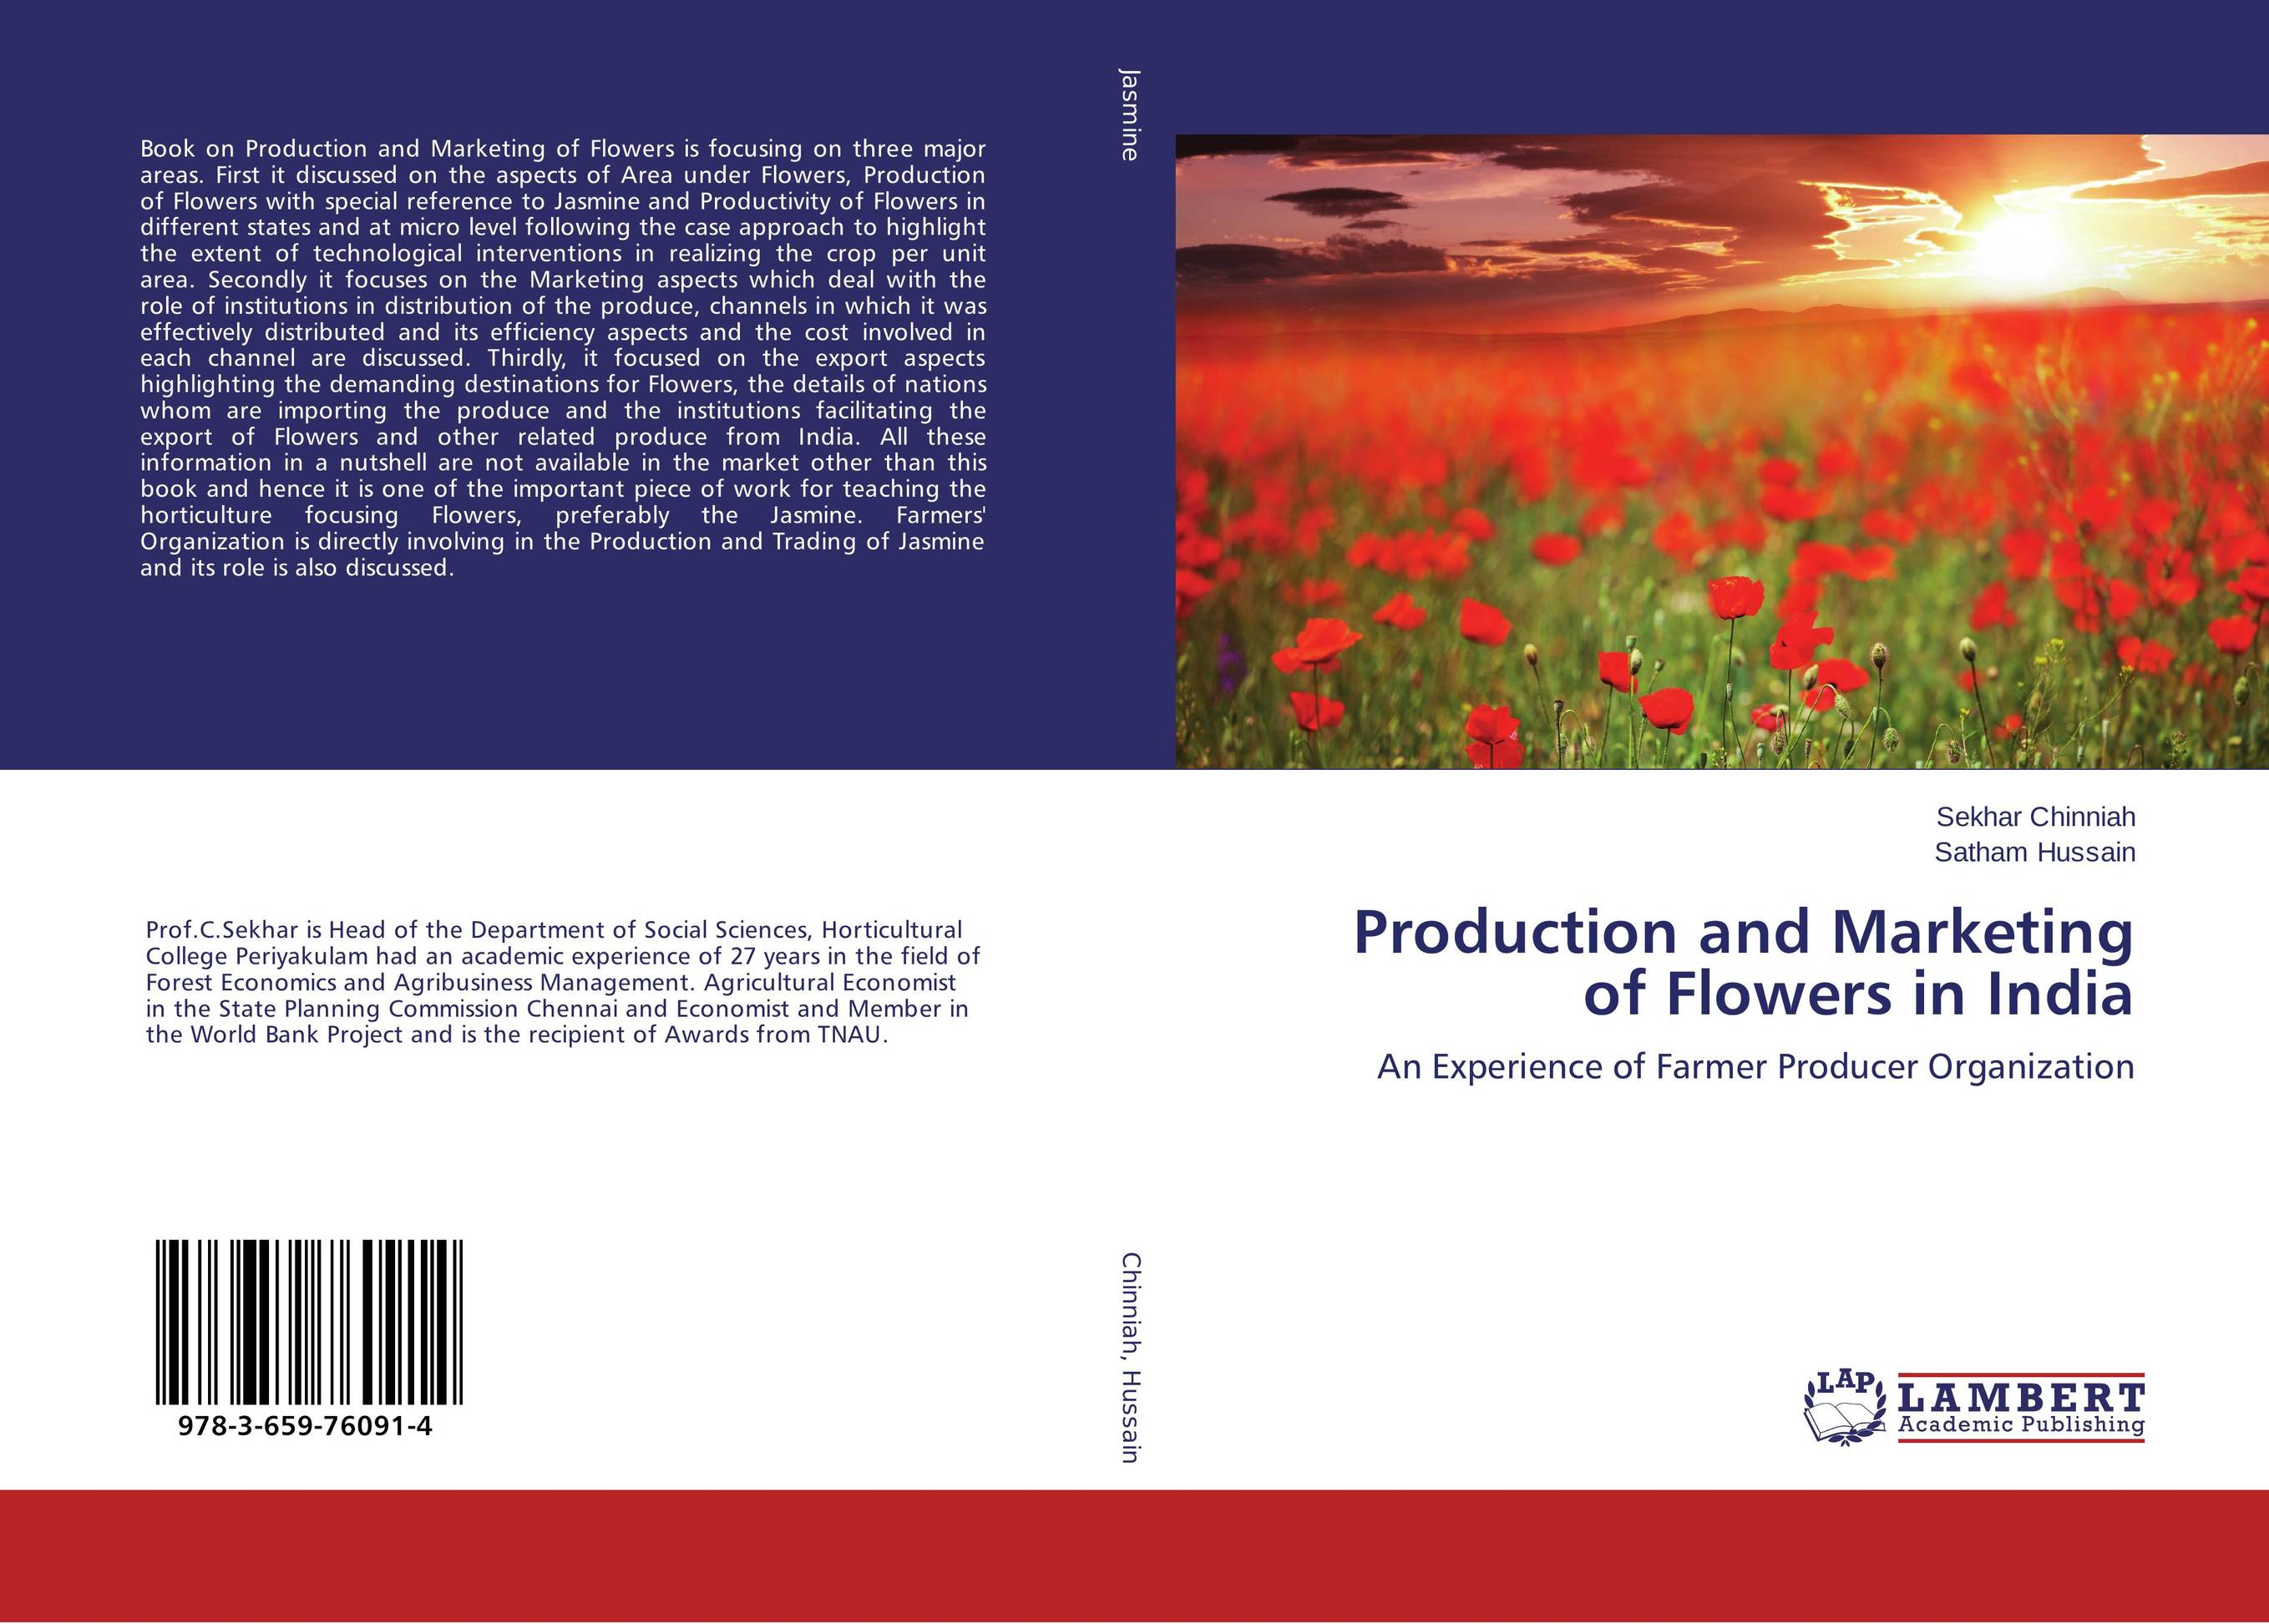 Production and Marketing of Flowers in India